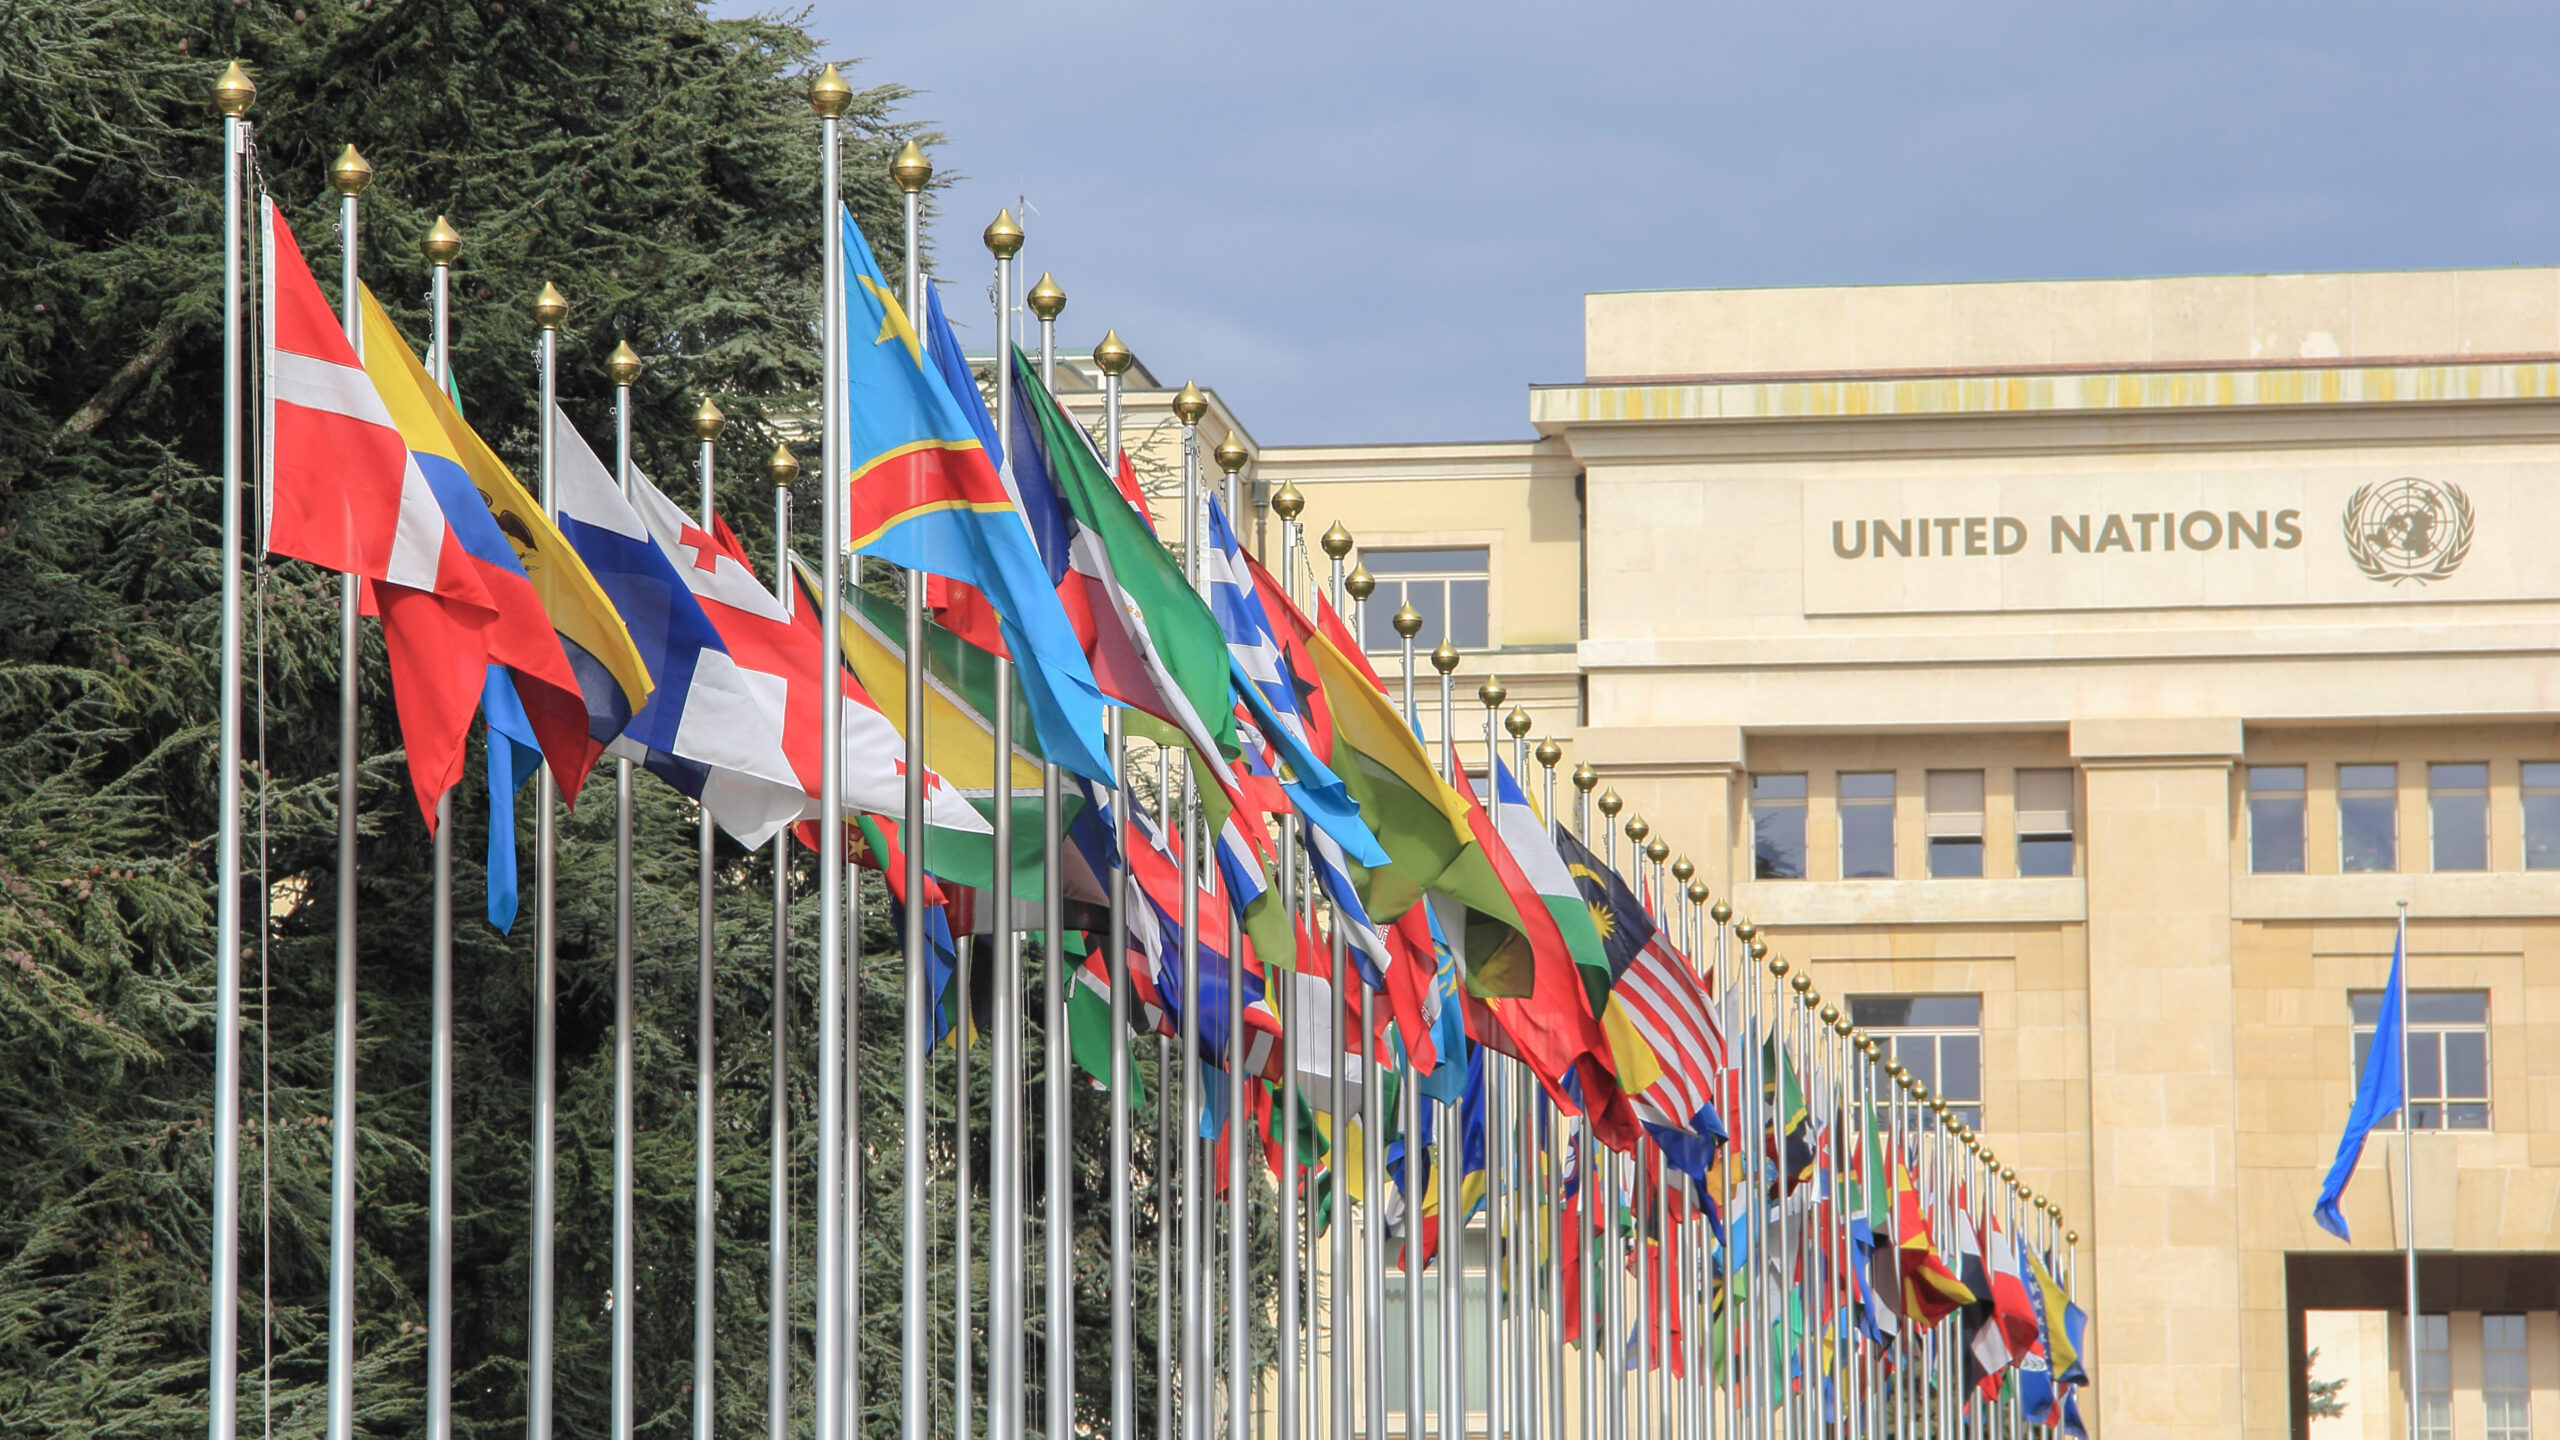 Member country flags fly in front of the UN building